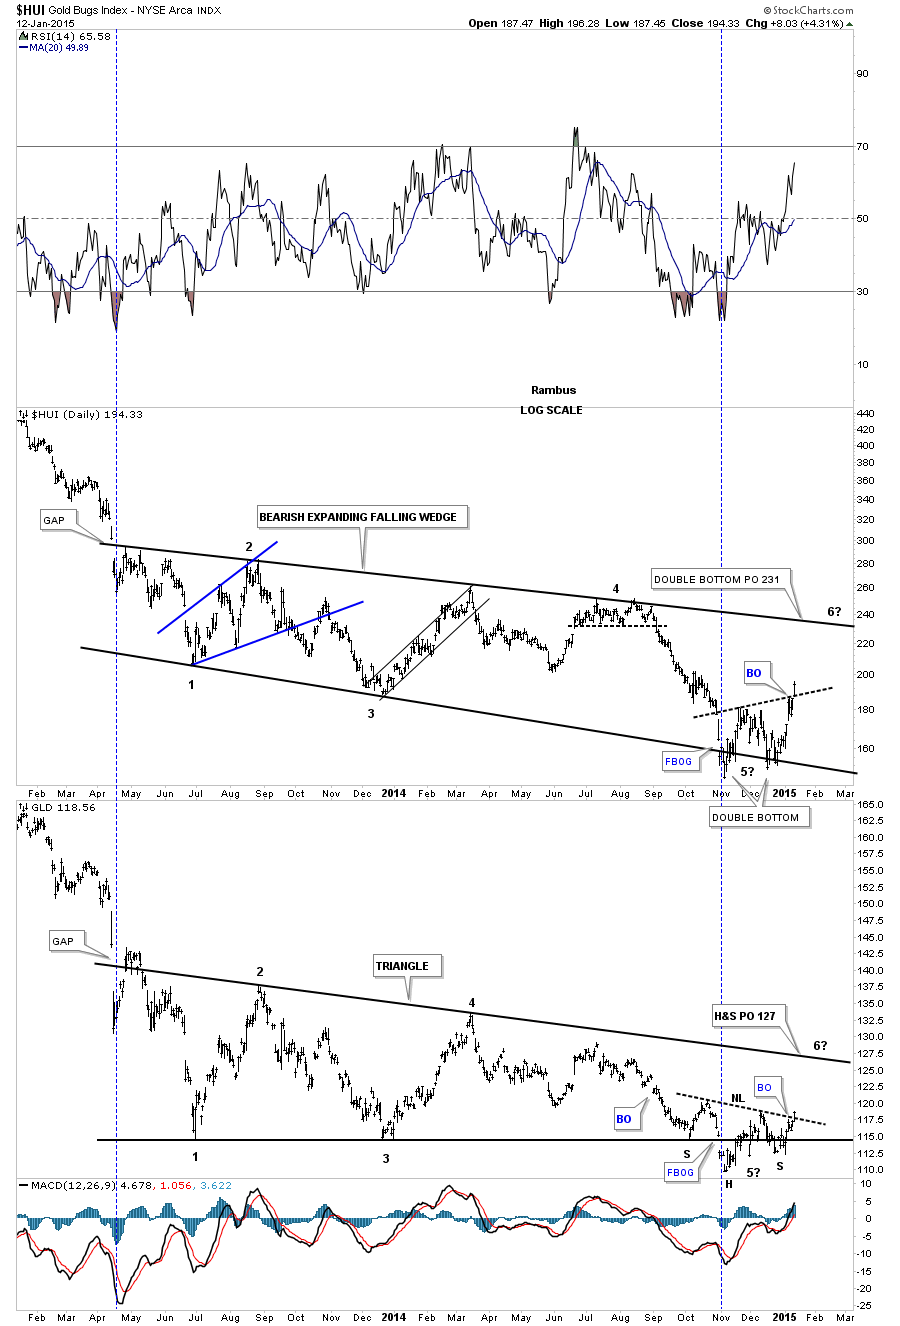 HUI and Gold Daily